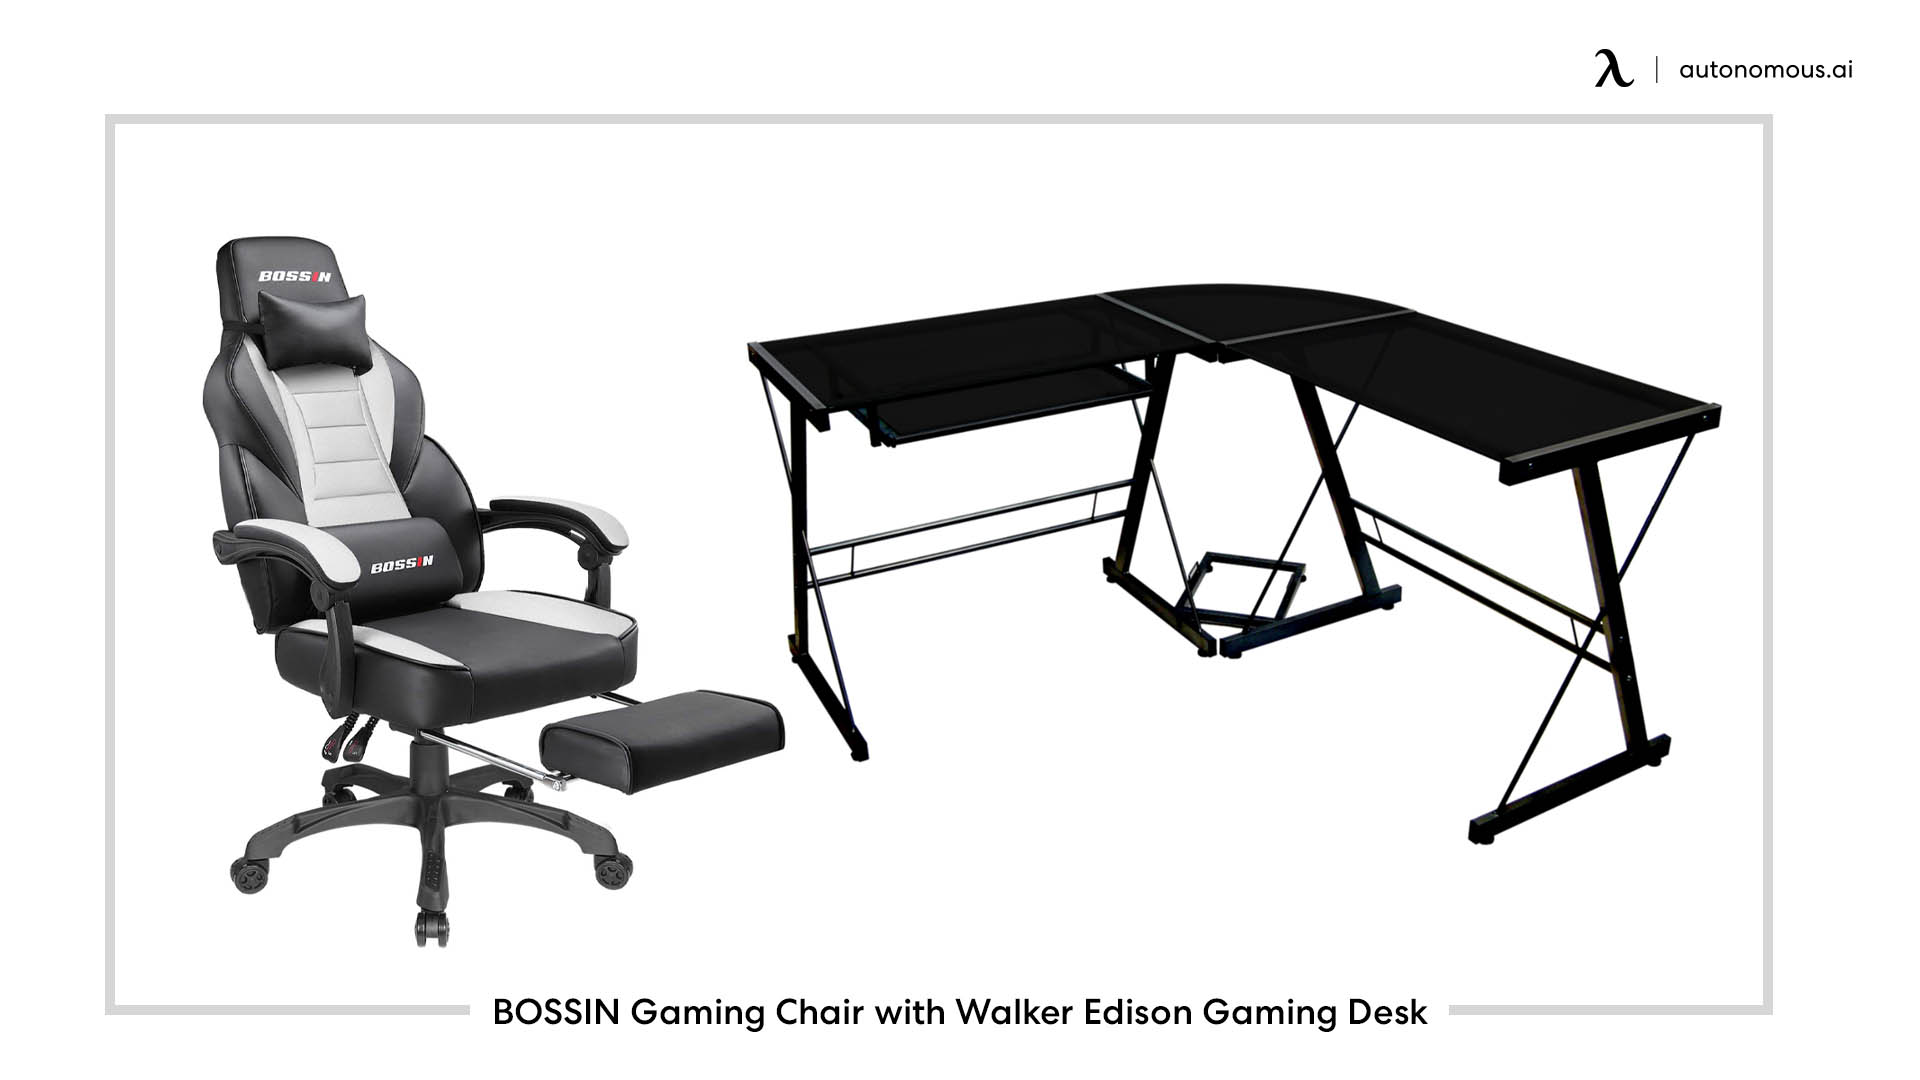 BOSSIN Gaming Chair with Walker Edison Gaming Desk